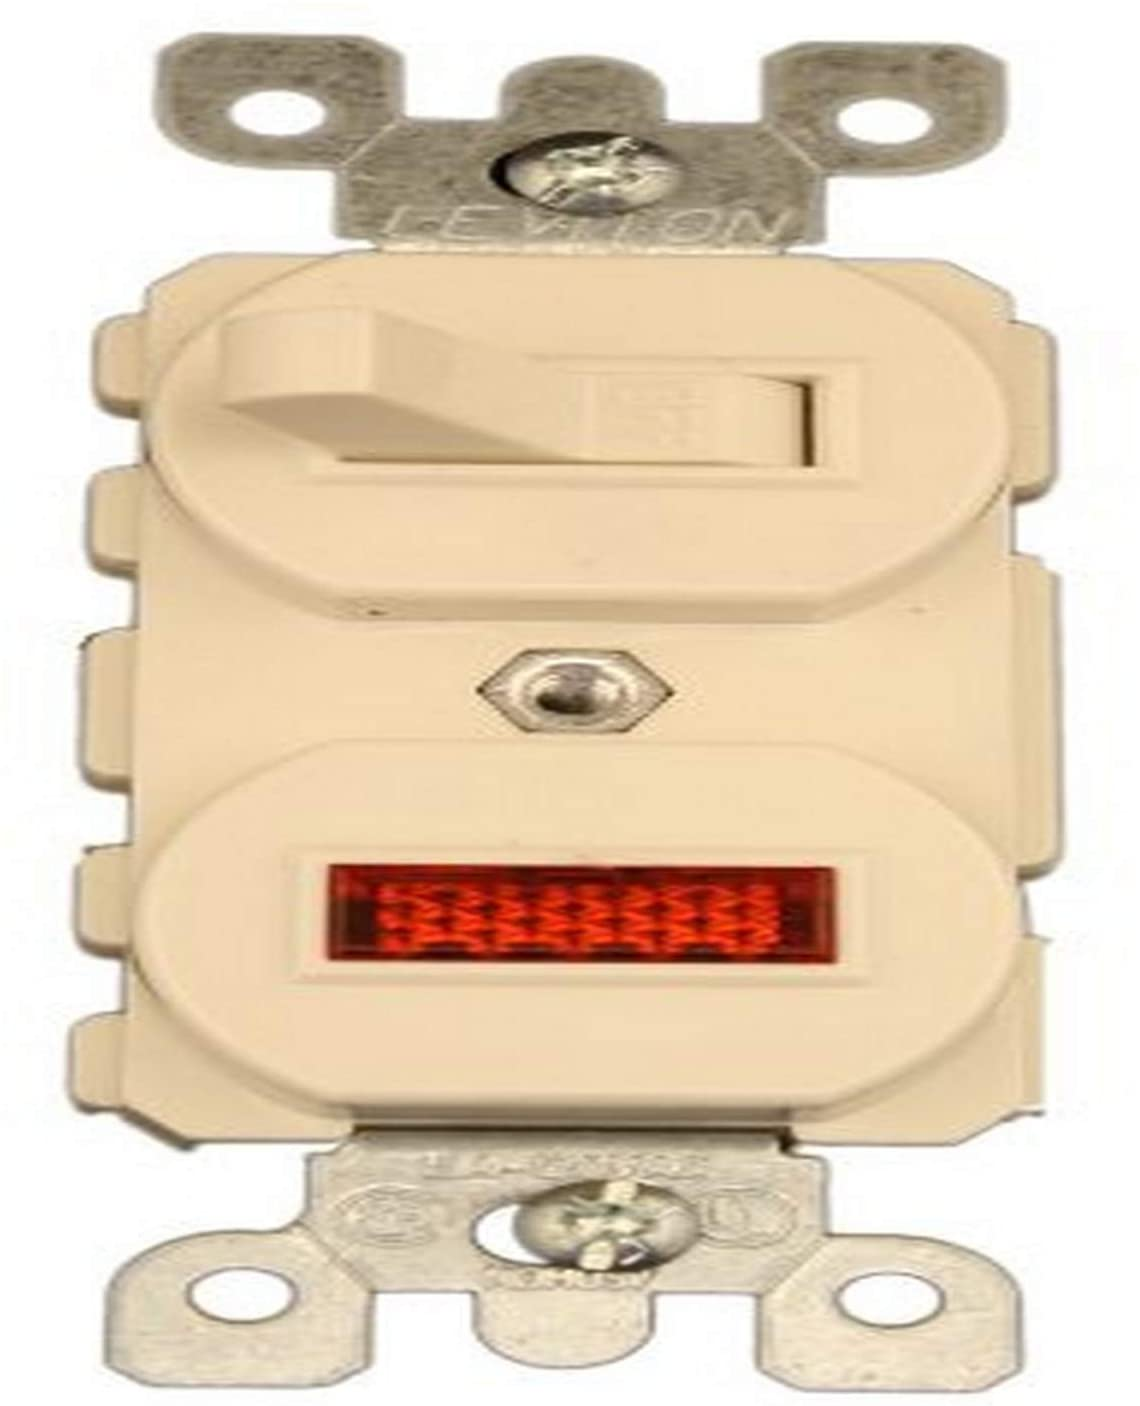 Leviton 5226-T, Light Almond